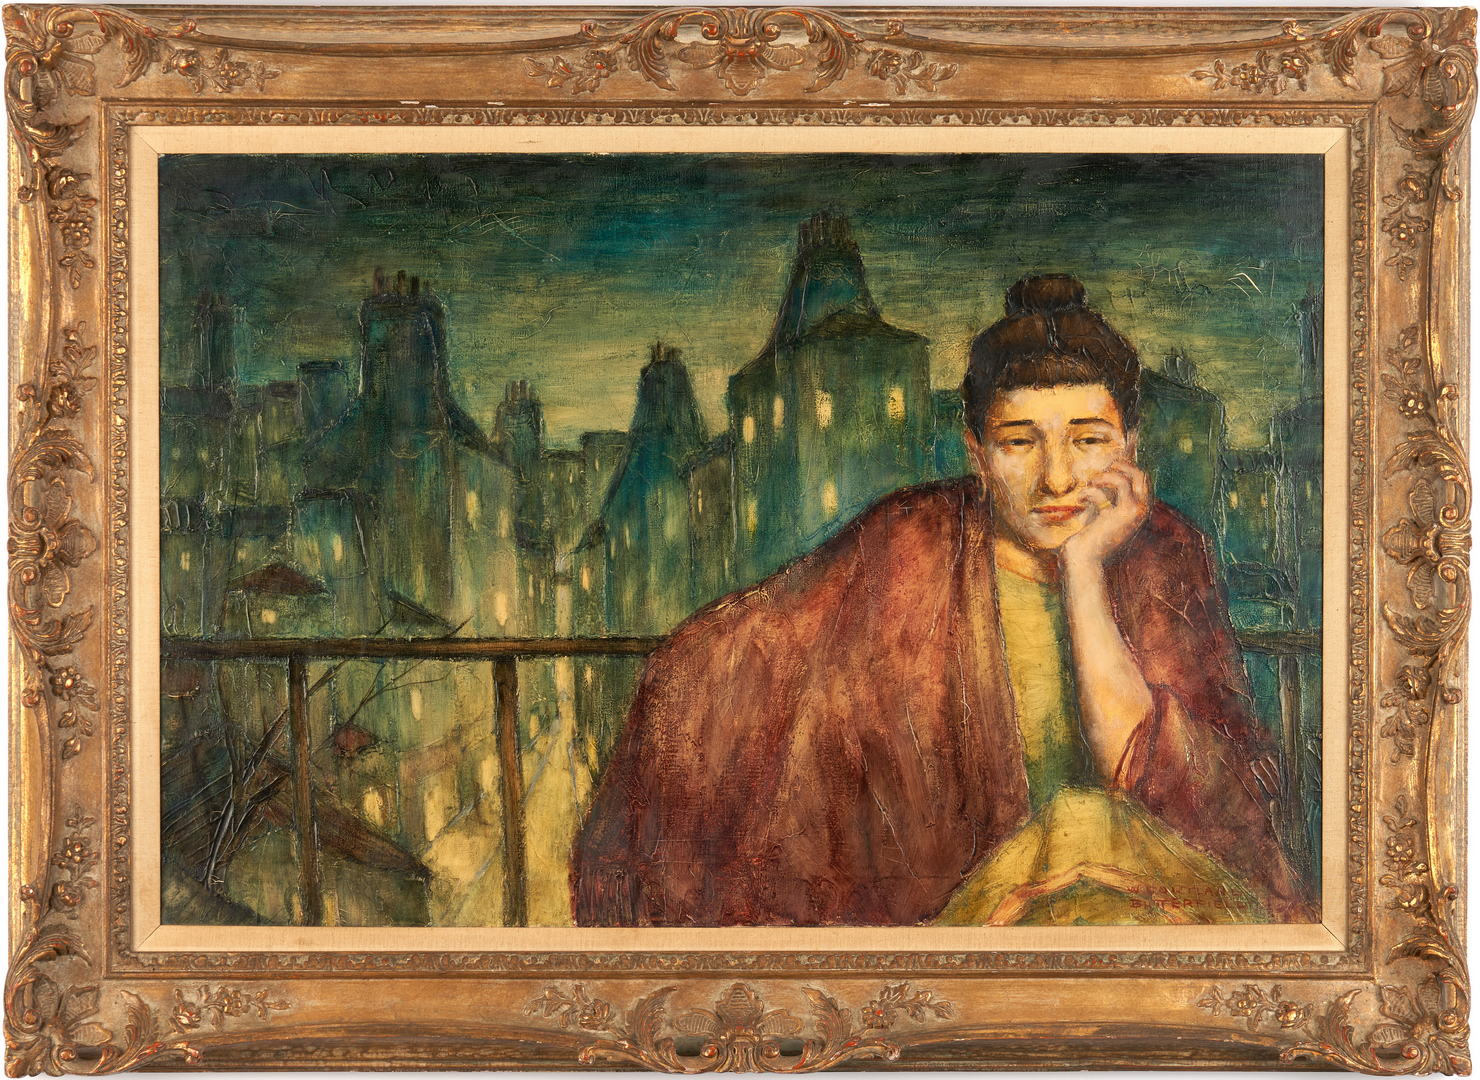 Lot 899: Cortland Butterfield O/C, Portrait of Woman